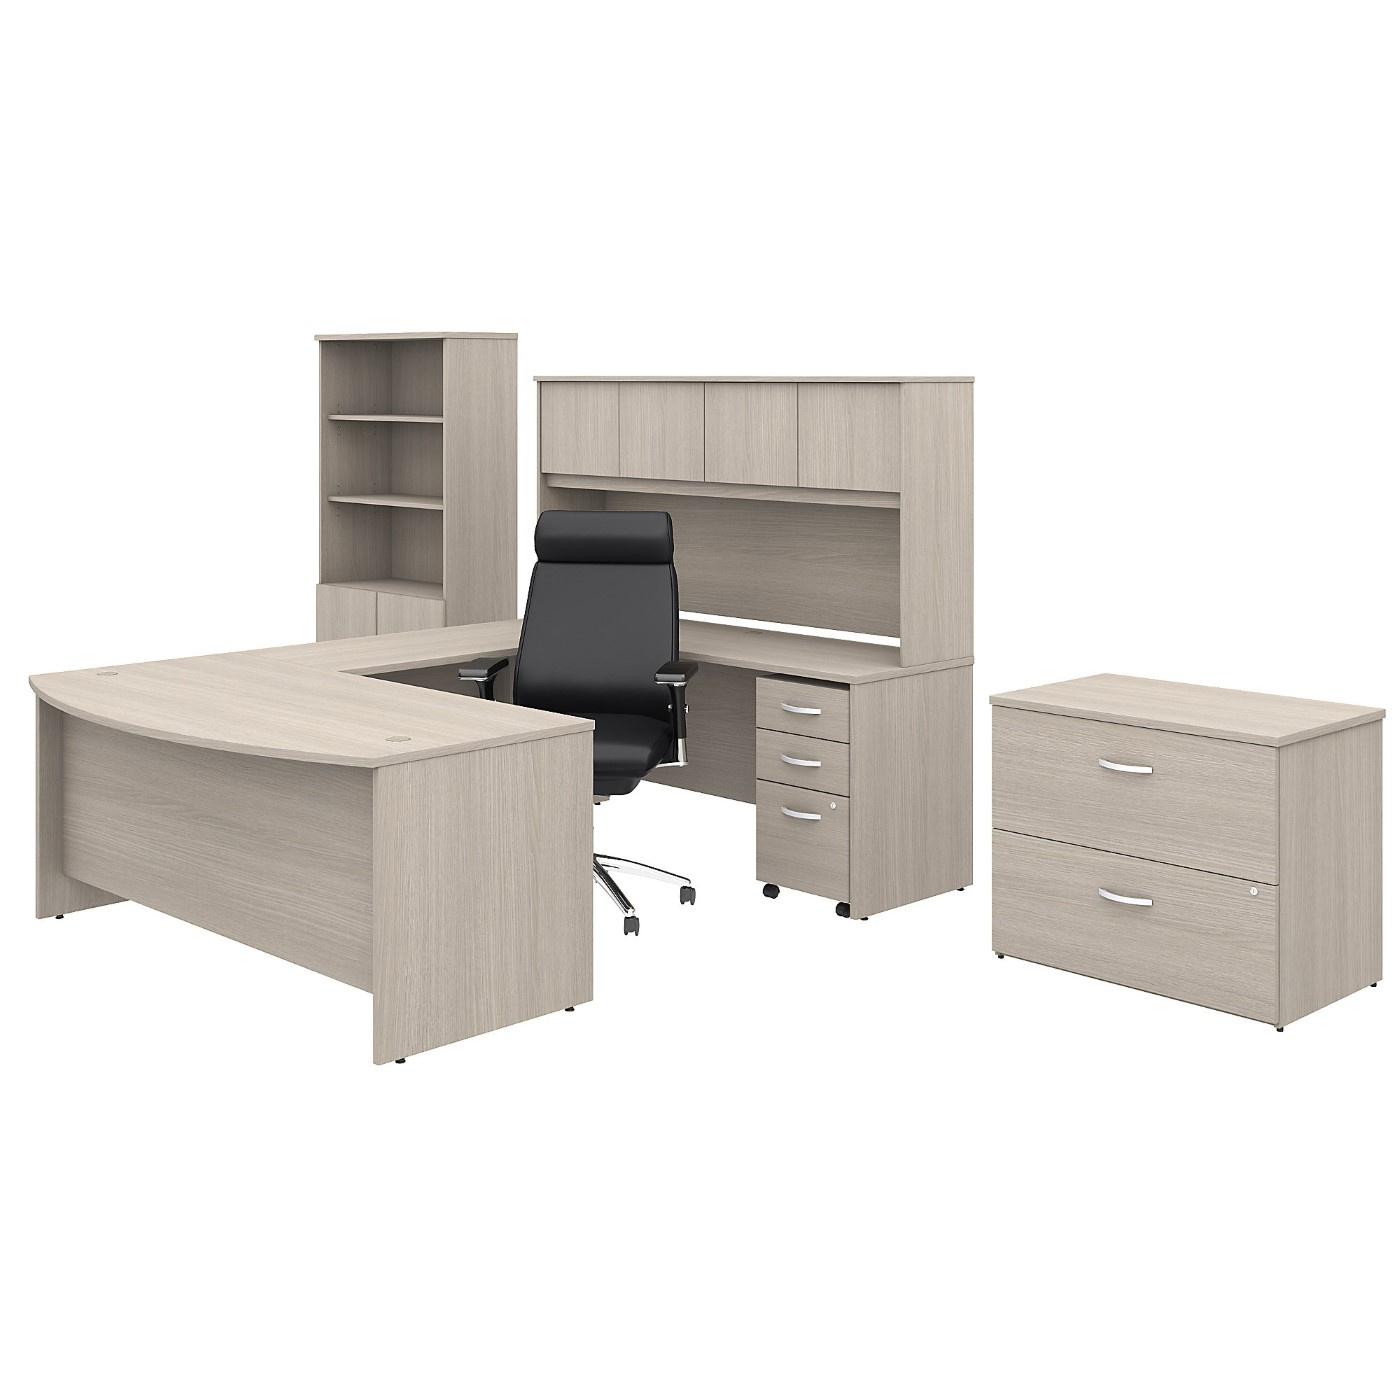 BUSH BUSINESS FURNITURE STUDIO C 72W X 36D U SHAPED DESK WITH HUTCH, BOOKCASE, FILE CABINETS AND HIGH BACK OFFICE CHAIR. FREE SHIPPING